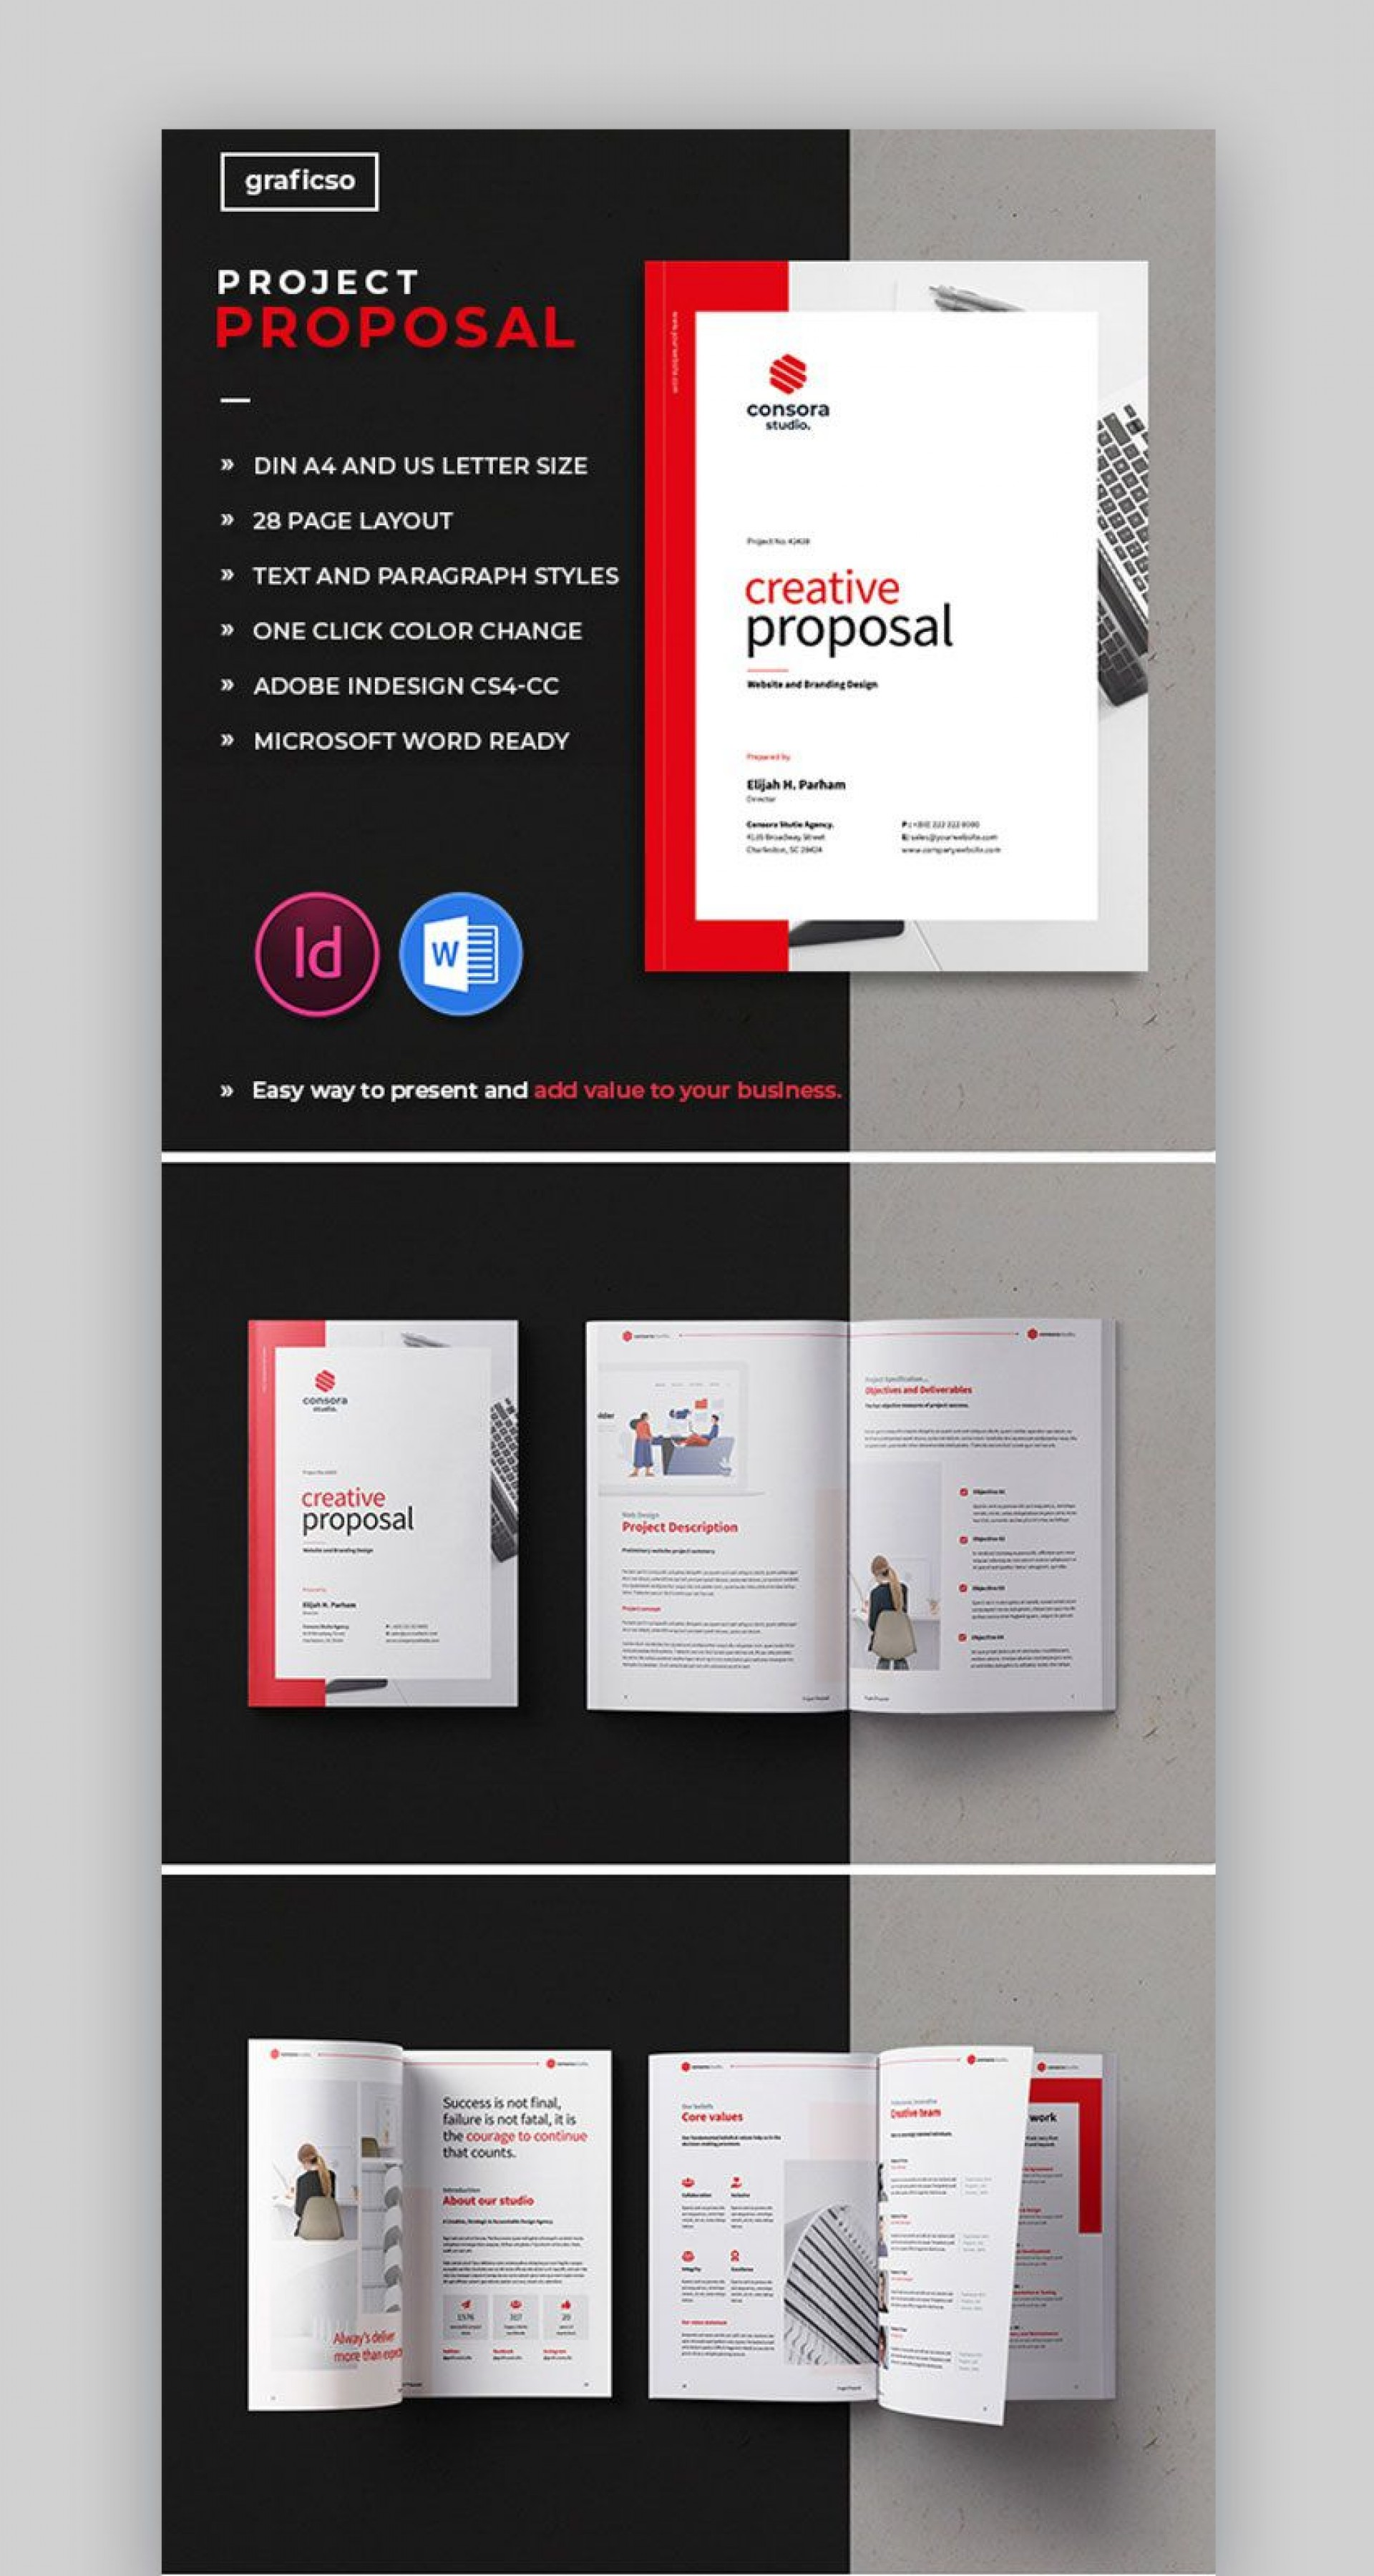 007 Simple Graphic Design Proposal Template Doc Free Concept 1920